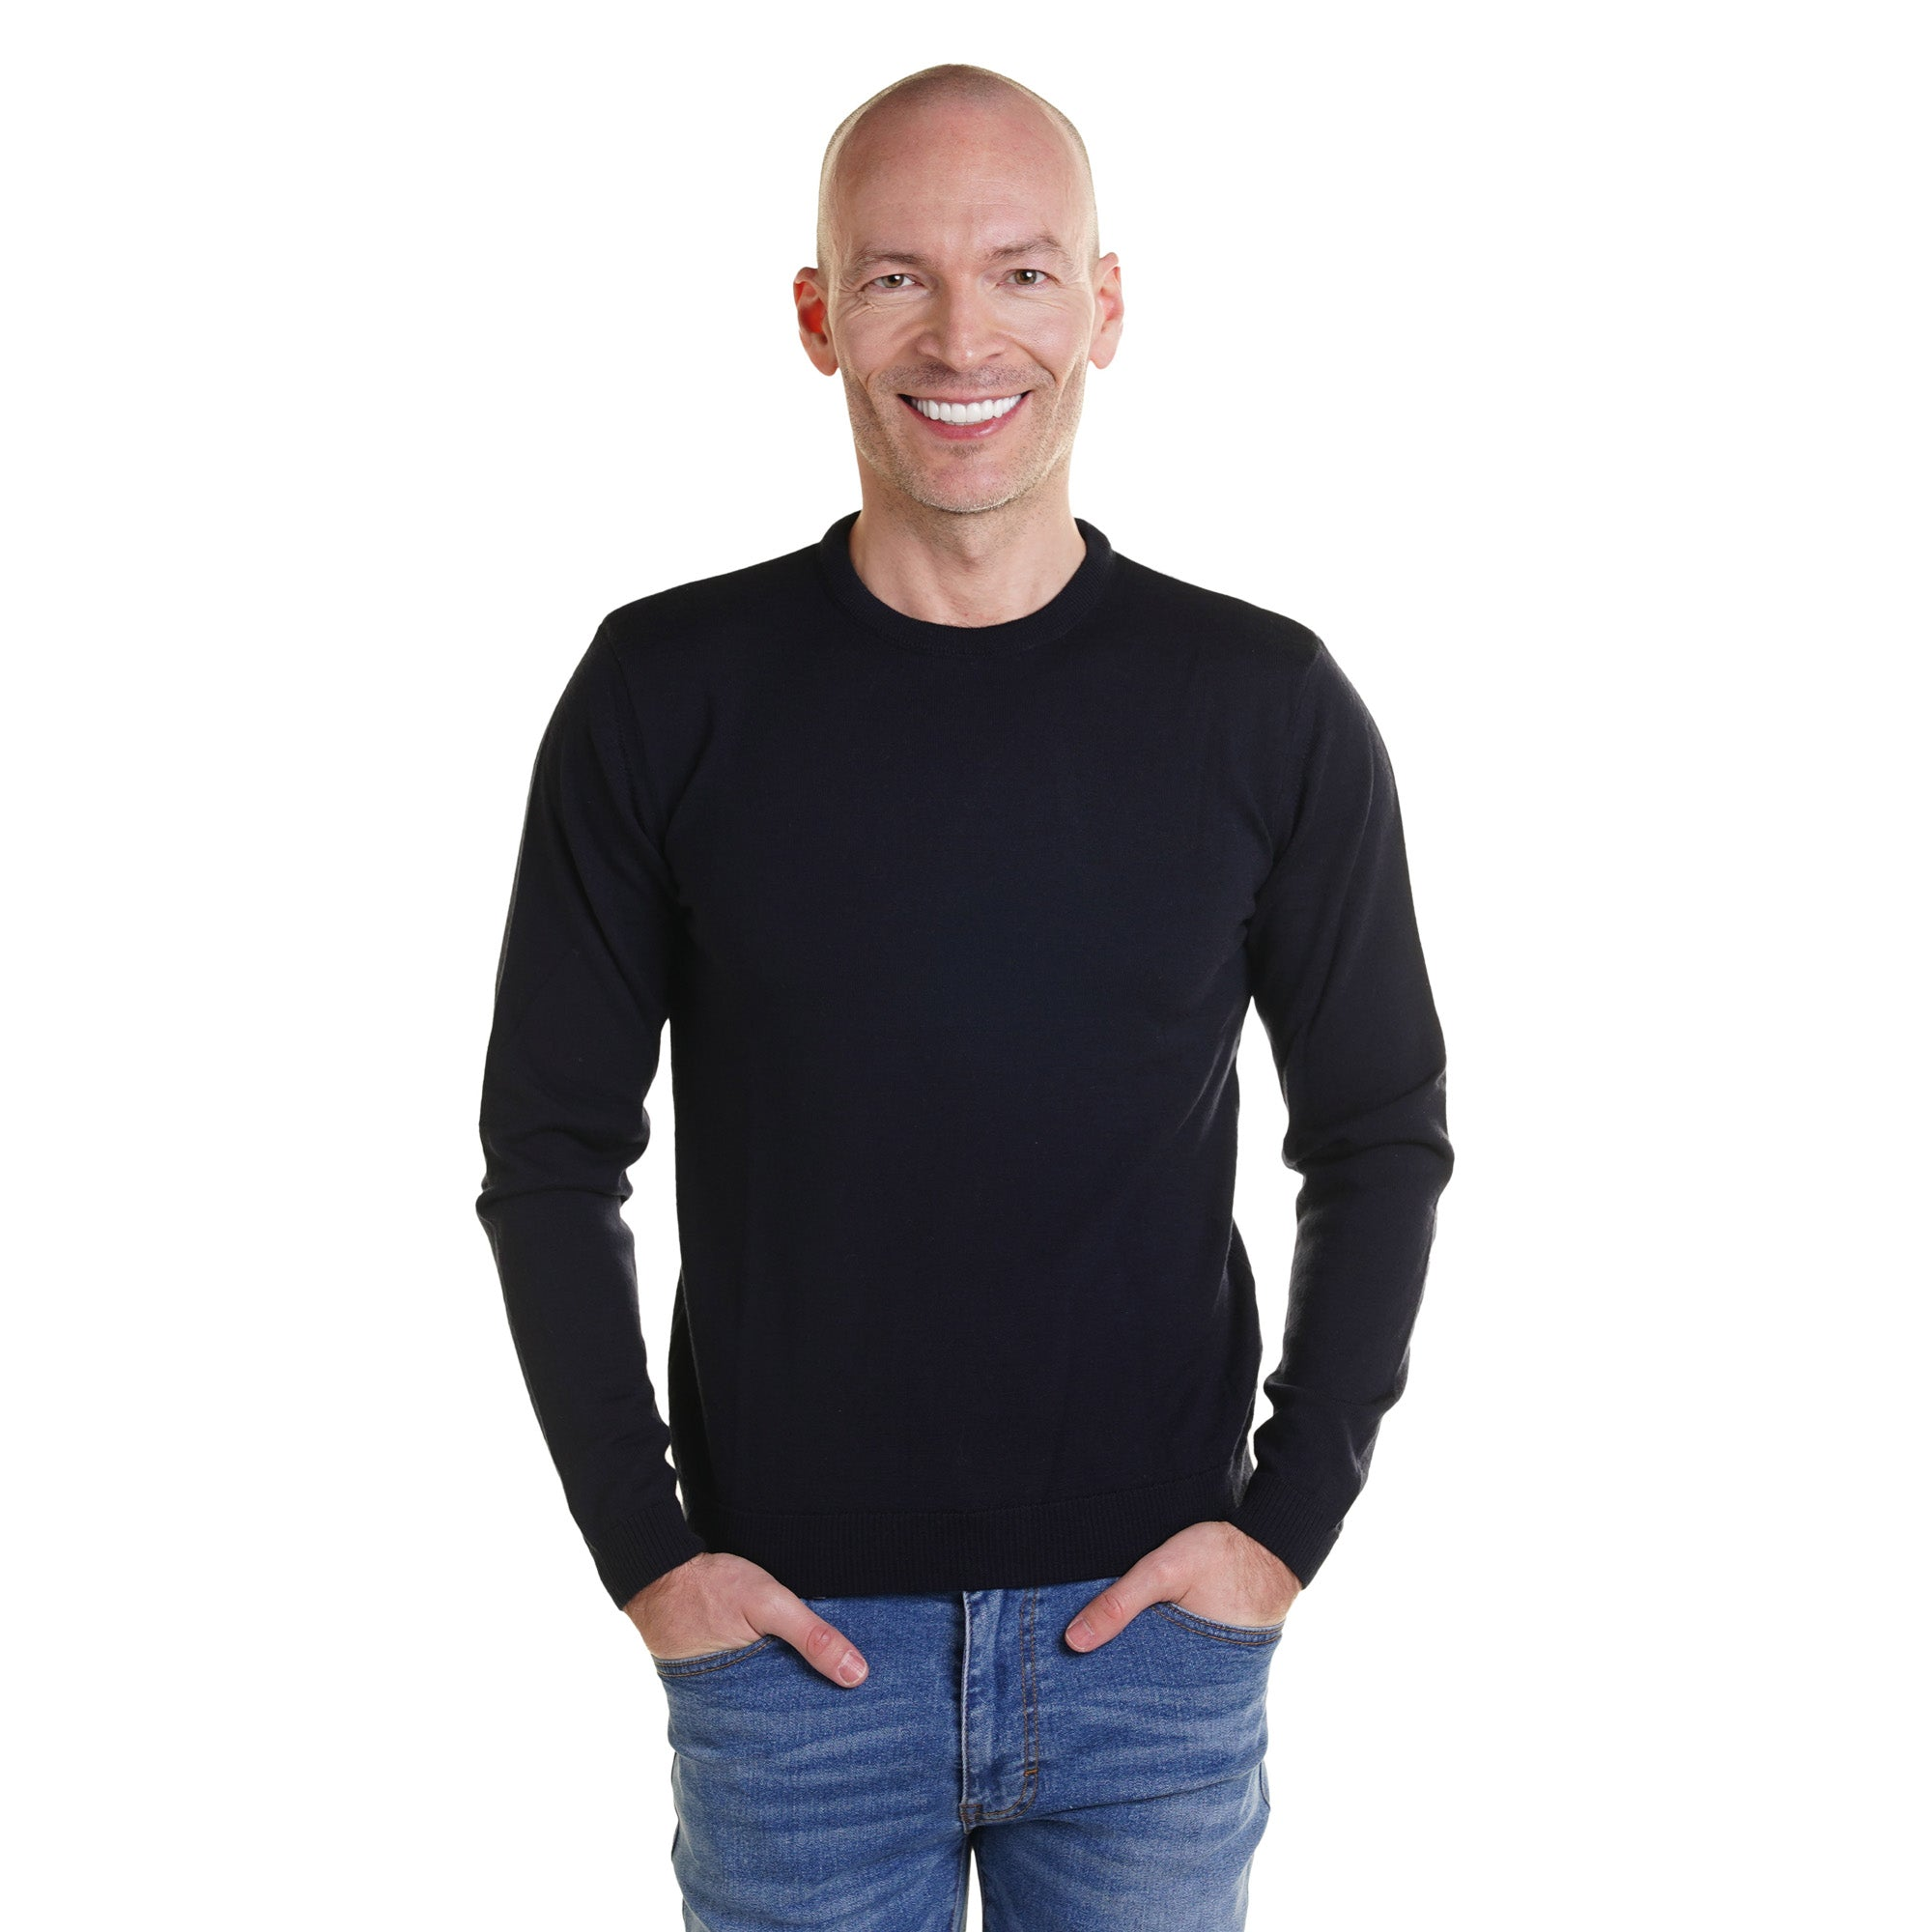 Zegna Merino Wool Crew Neck Sweaters - Black